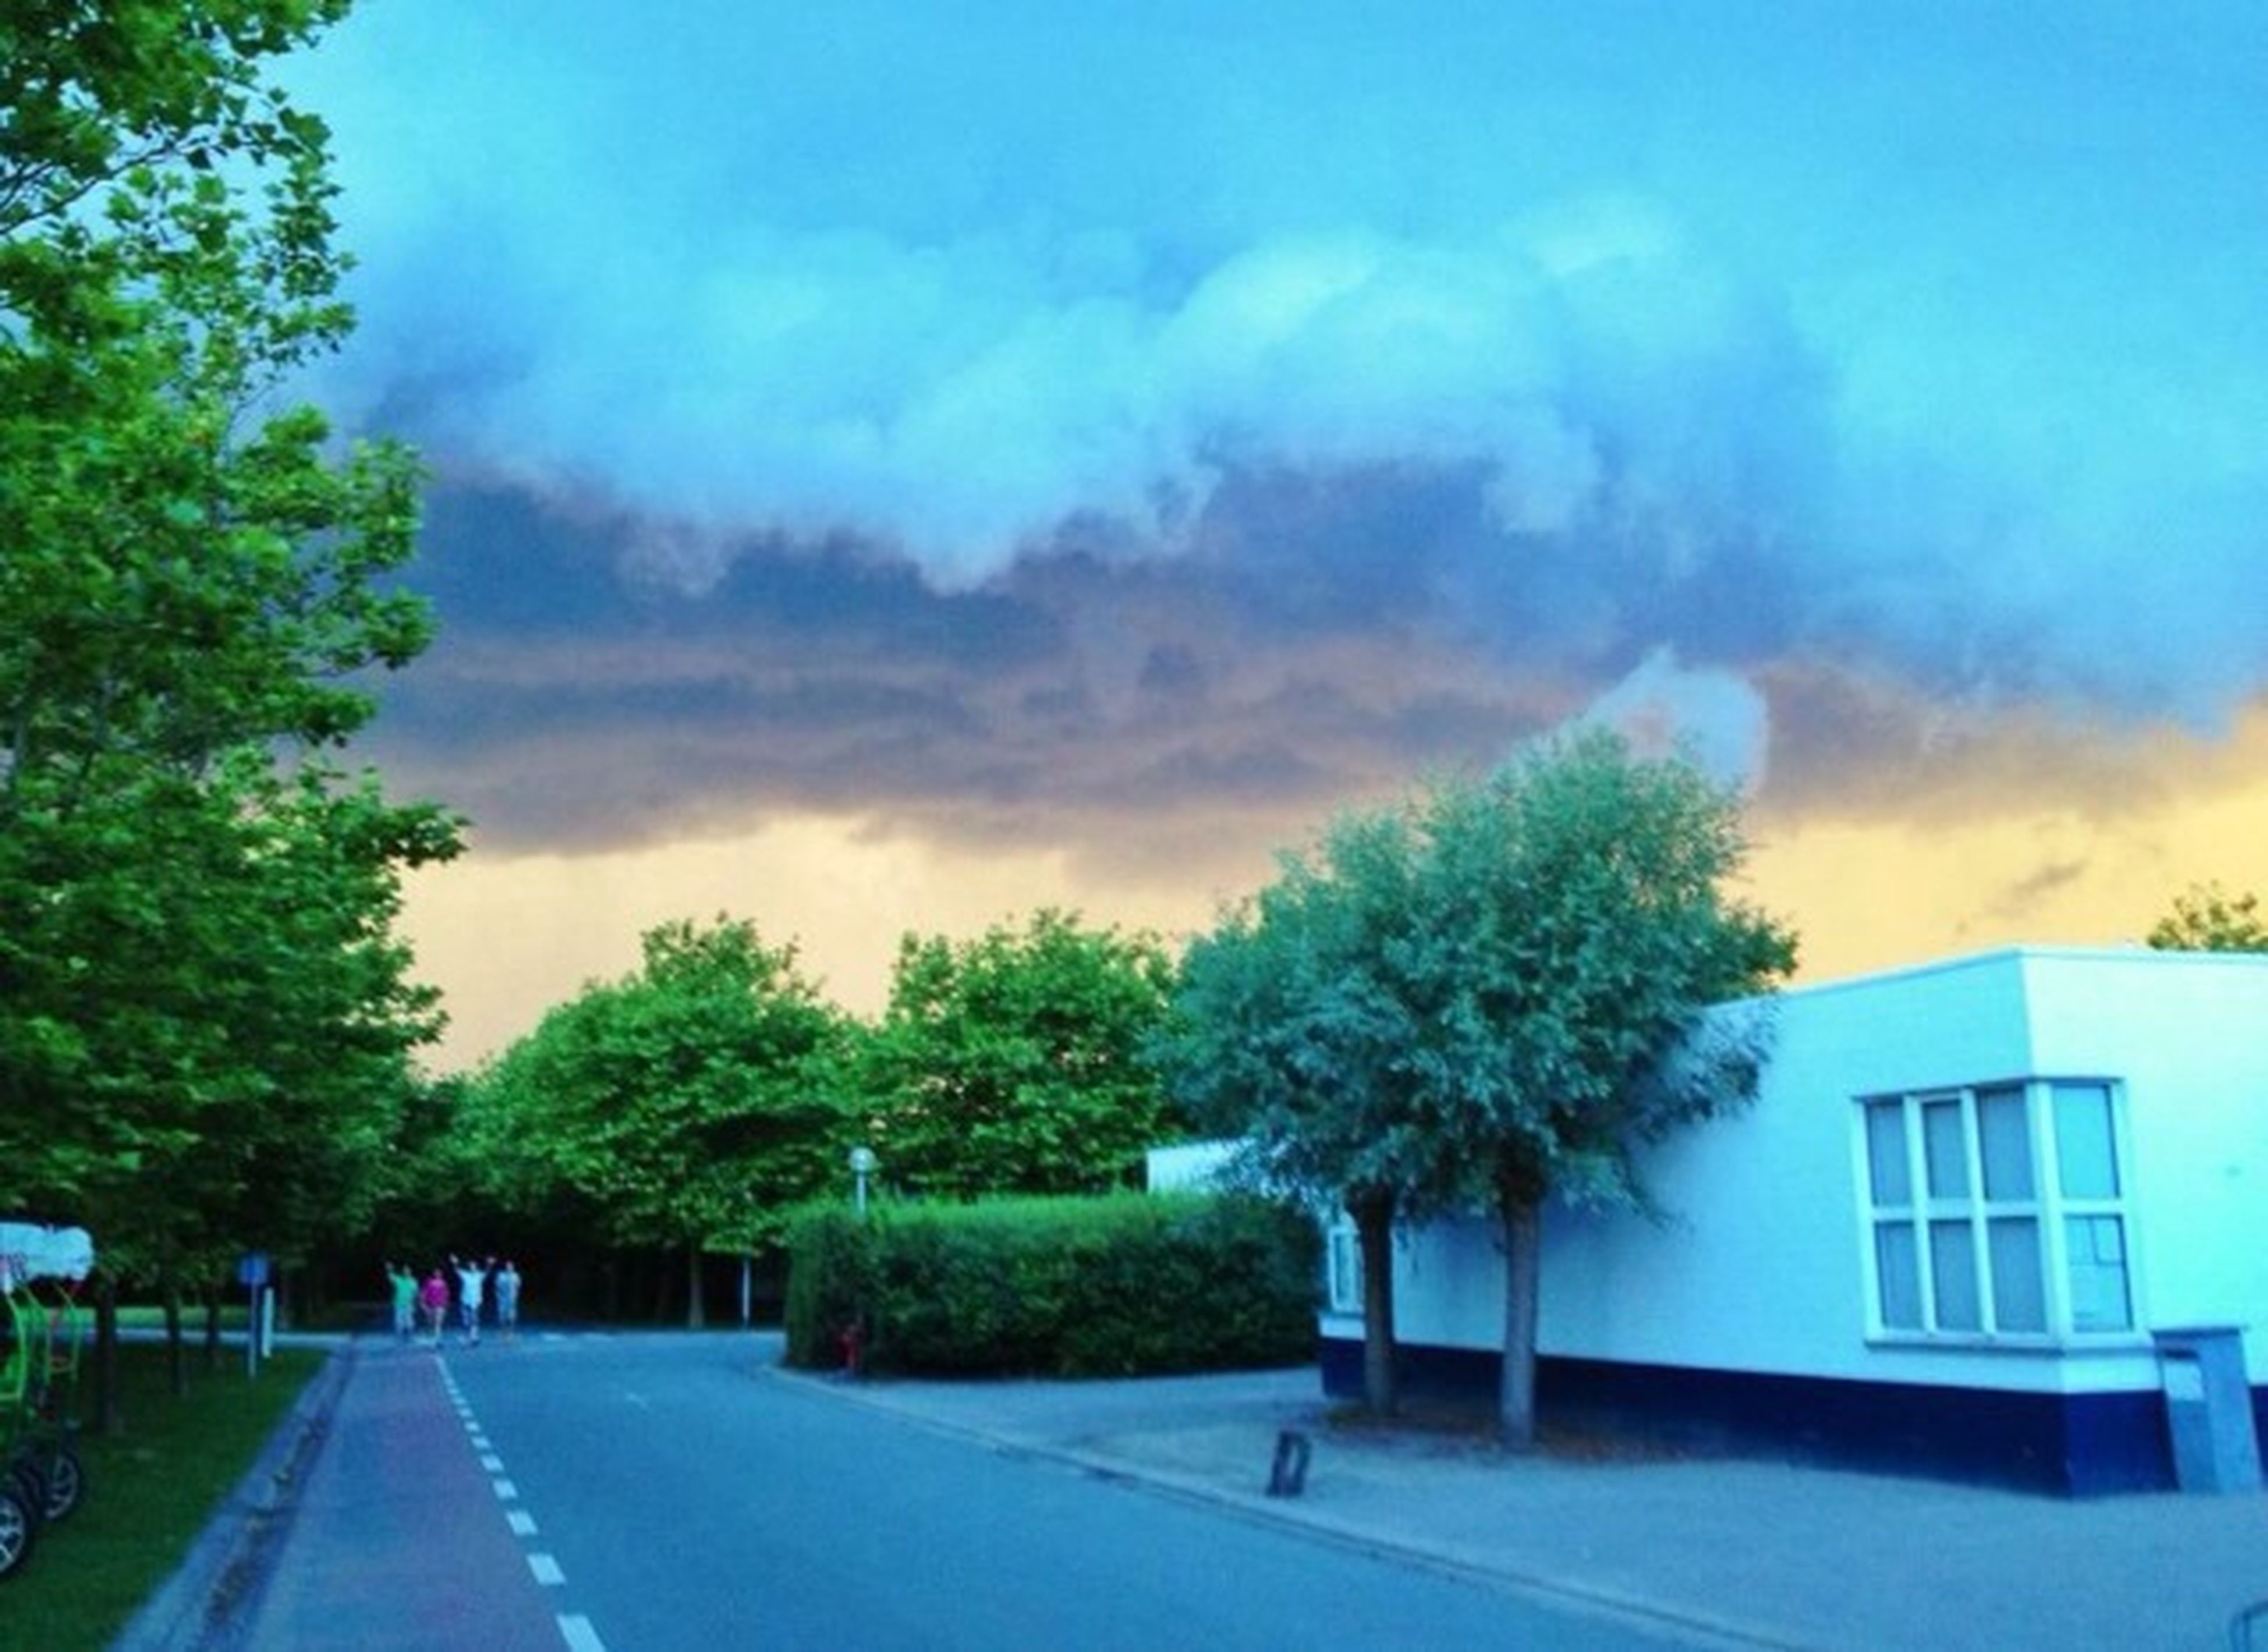 sky, building exterior, tree, cloud - sky, architecture, built structure, house, cloudy, the way forward, road, cloud, street, residential structure, nature, residential building, growth, outdoors, weather, day, storm cloud